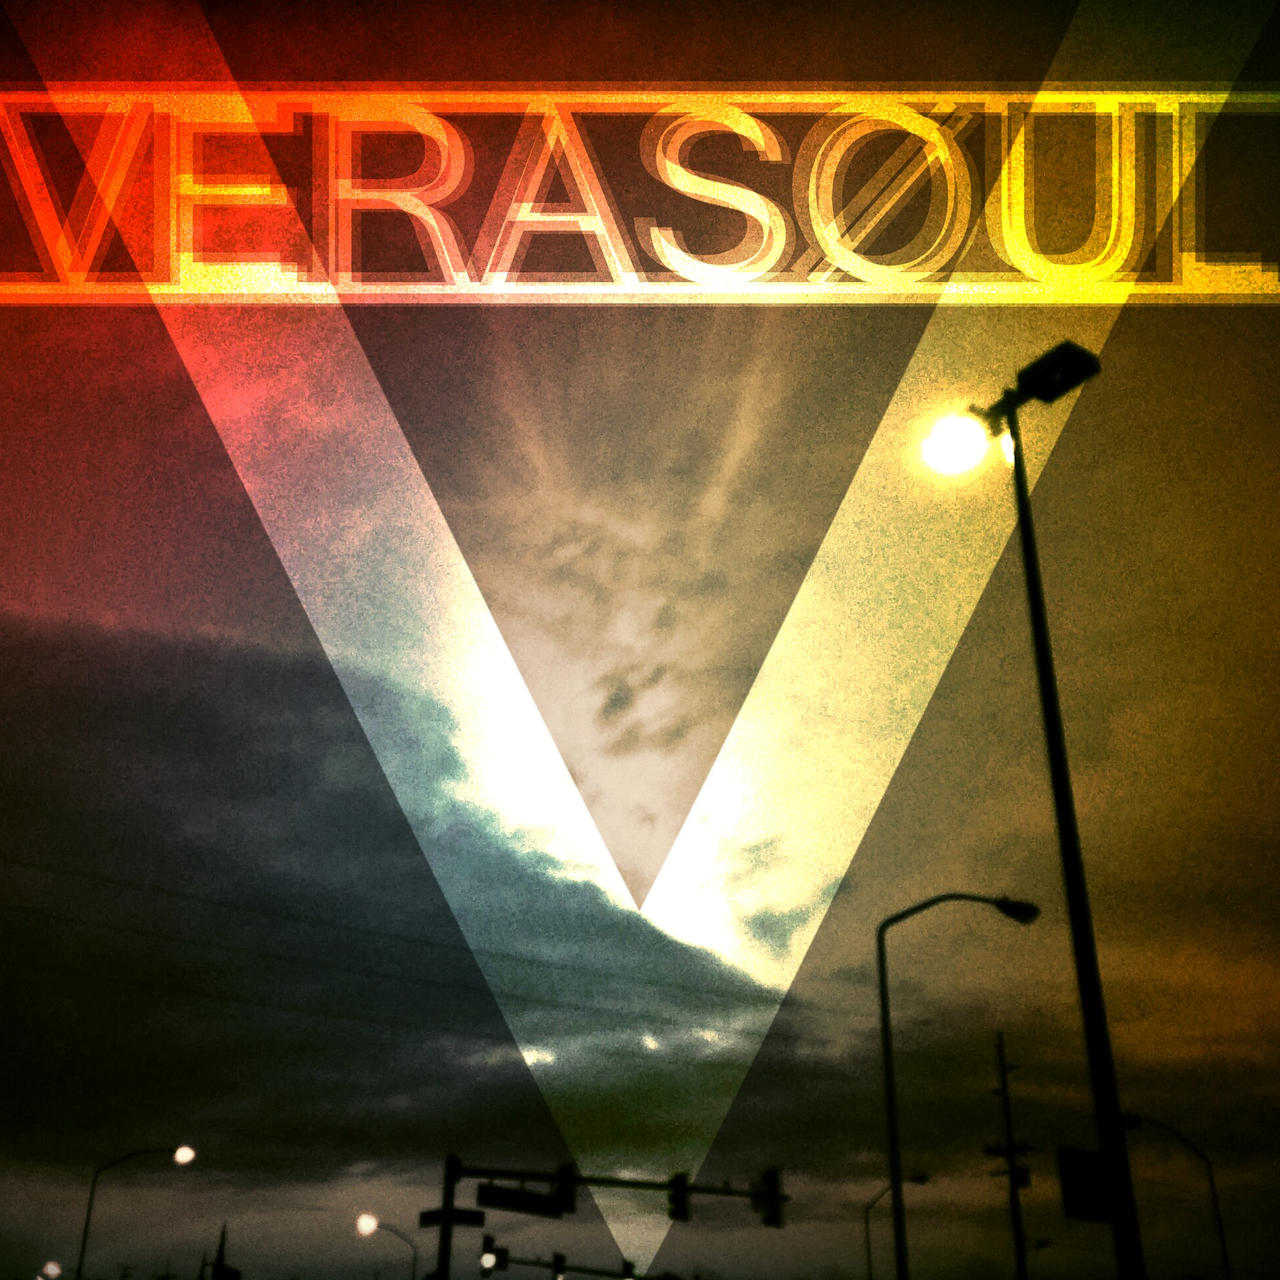 Verasoul's Profile Picture